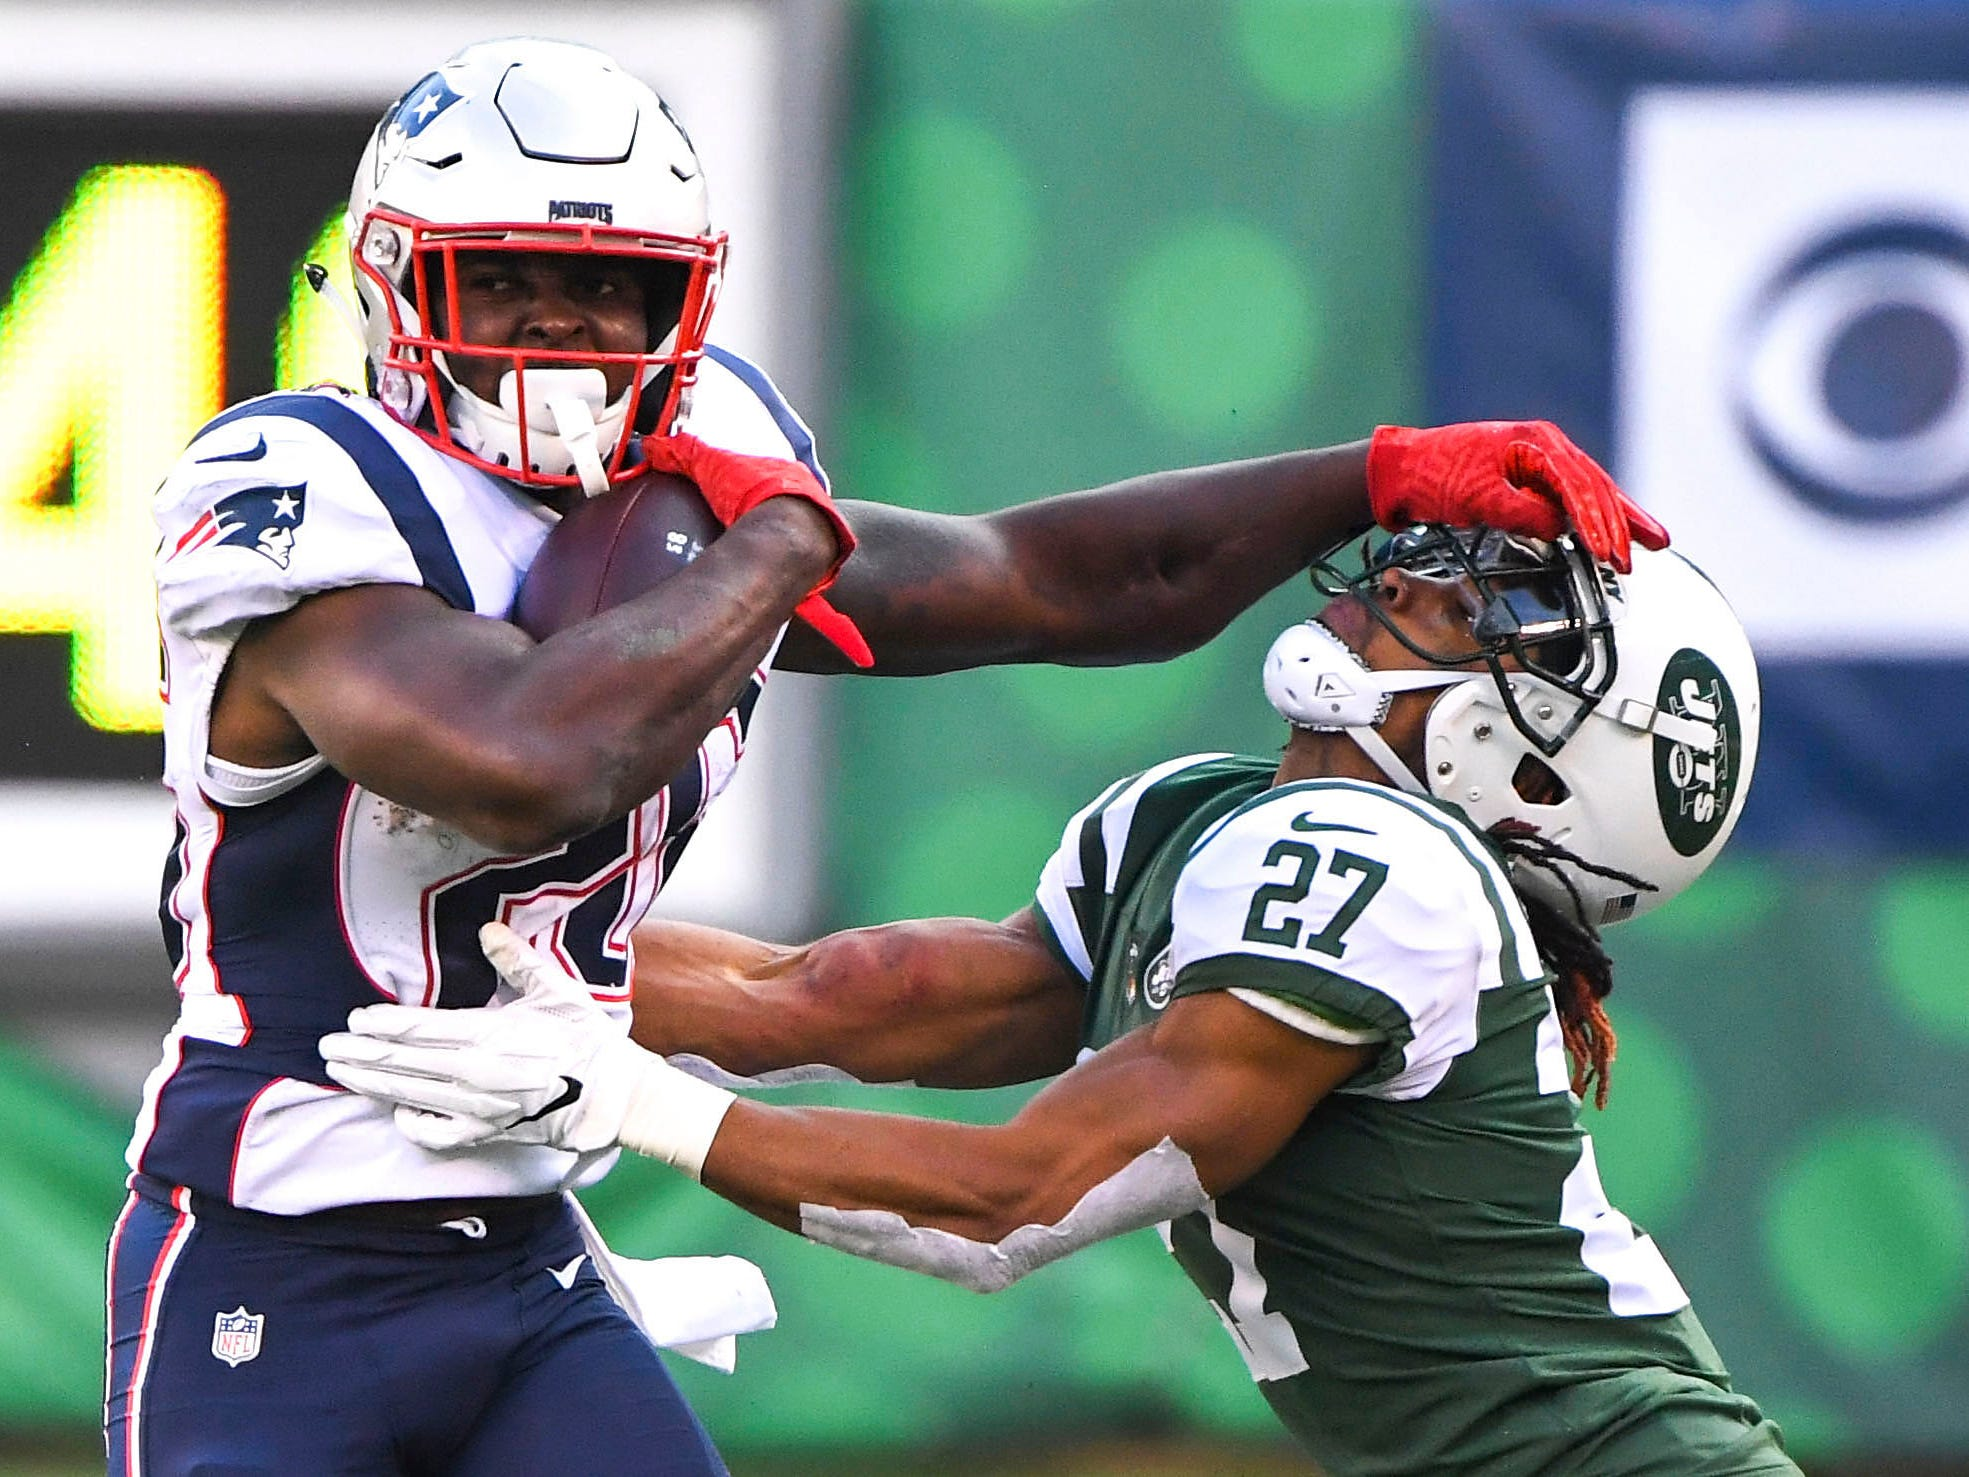 4. Patriots (5): Sunday would seem to be strong indication they've got all primary chess pieces back and are ready to peak at just right time. Per usual.